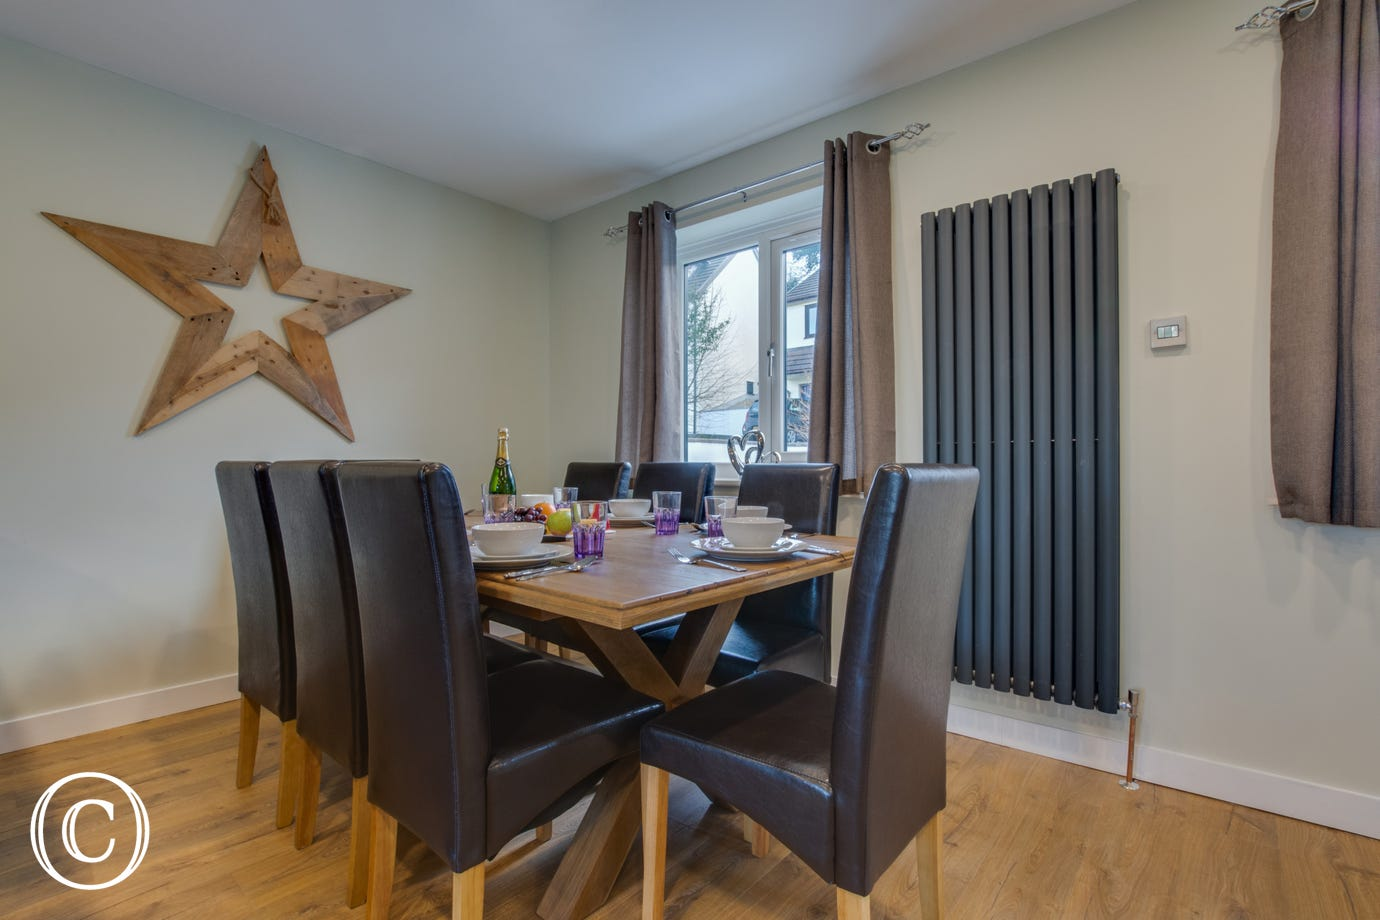 Holiday property in Saundersfoot with dining area